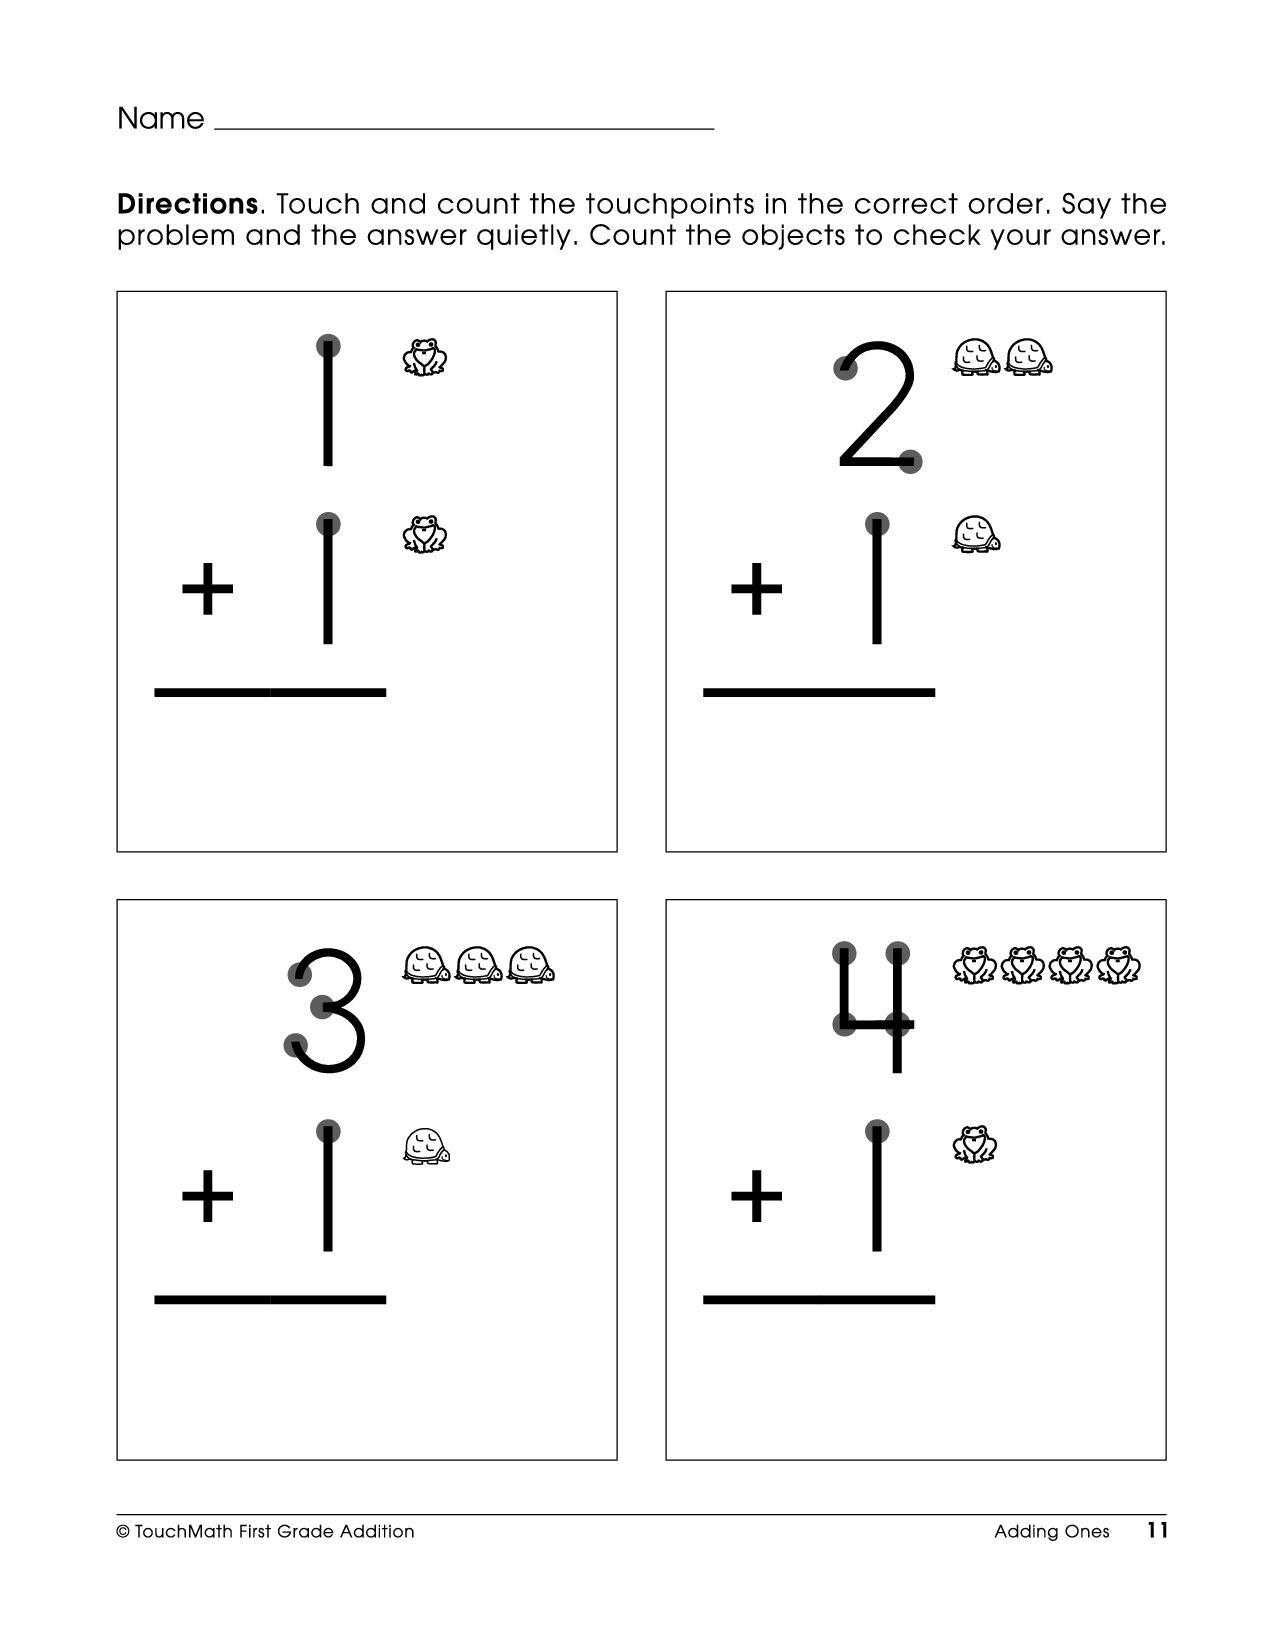 Touch Math Printable Worksheets